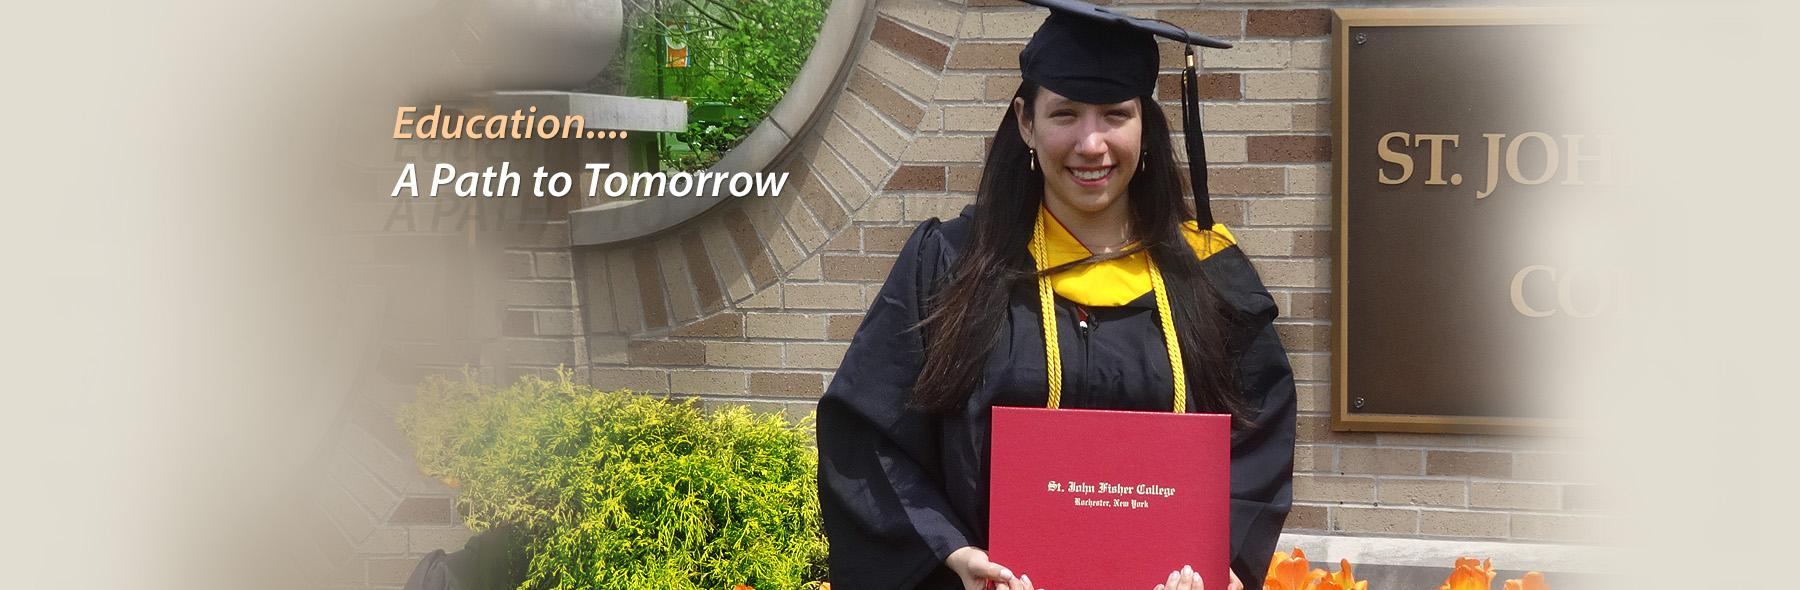 Young woman in graduation gown and mortar board holds her diploma